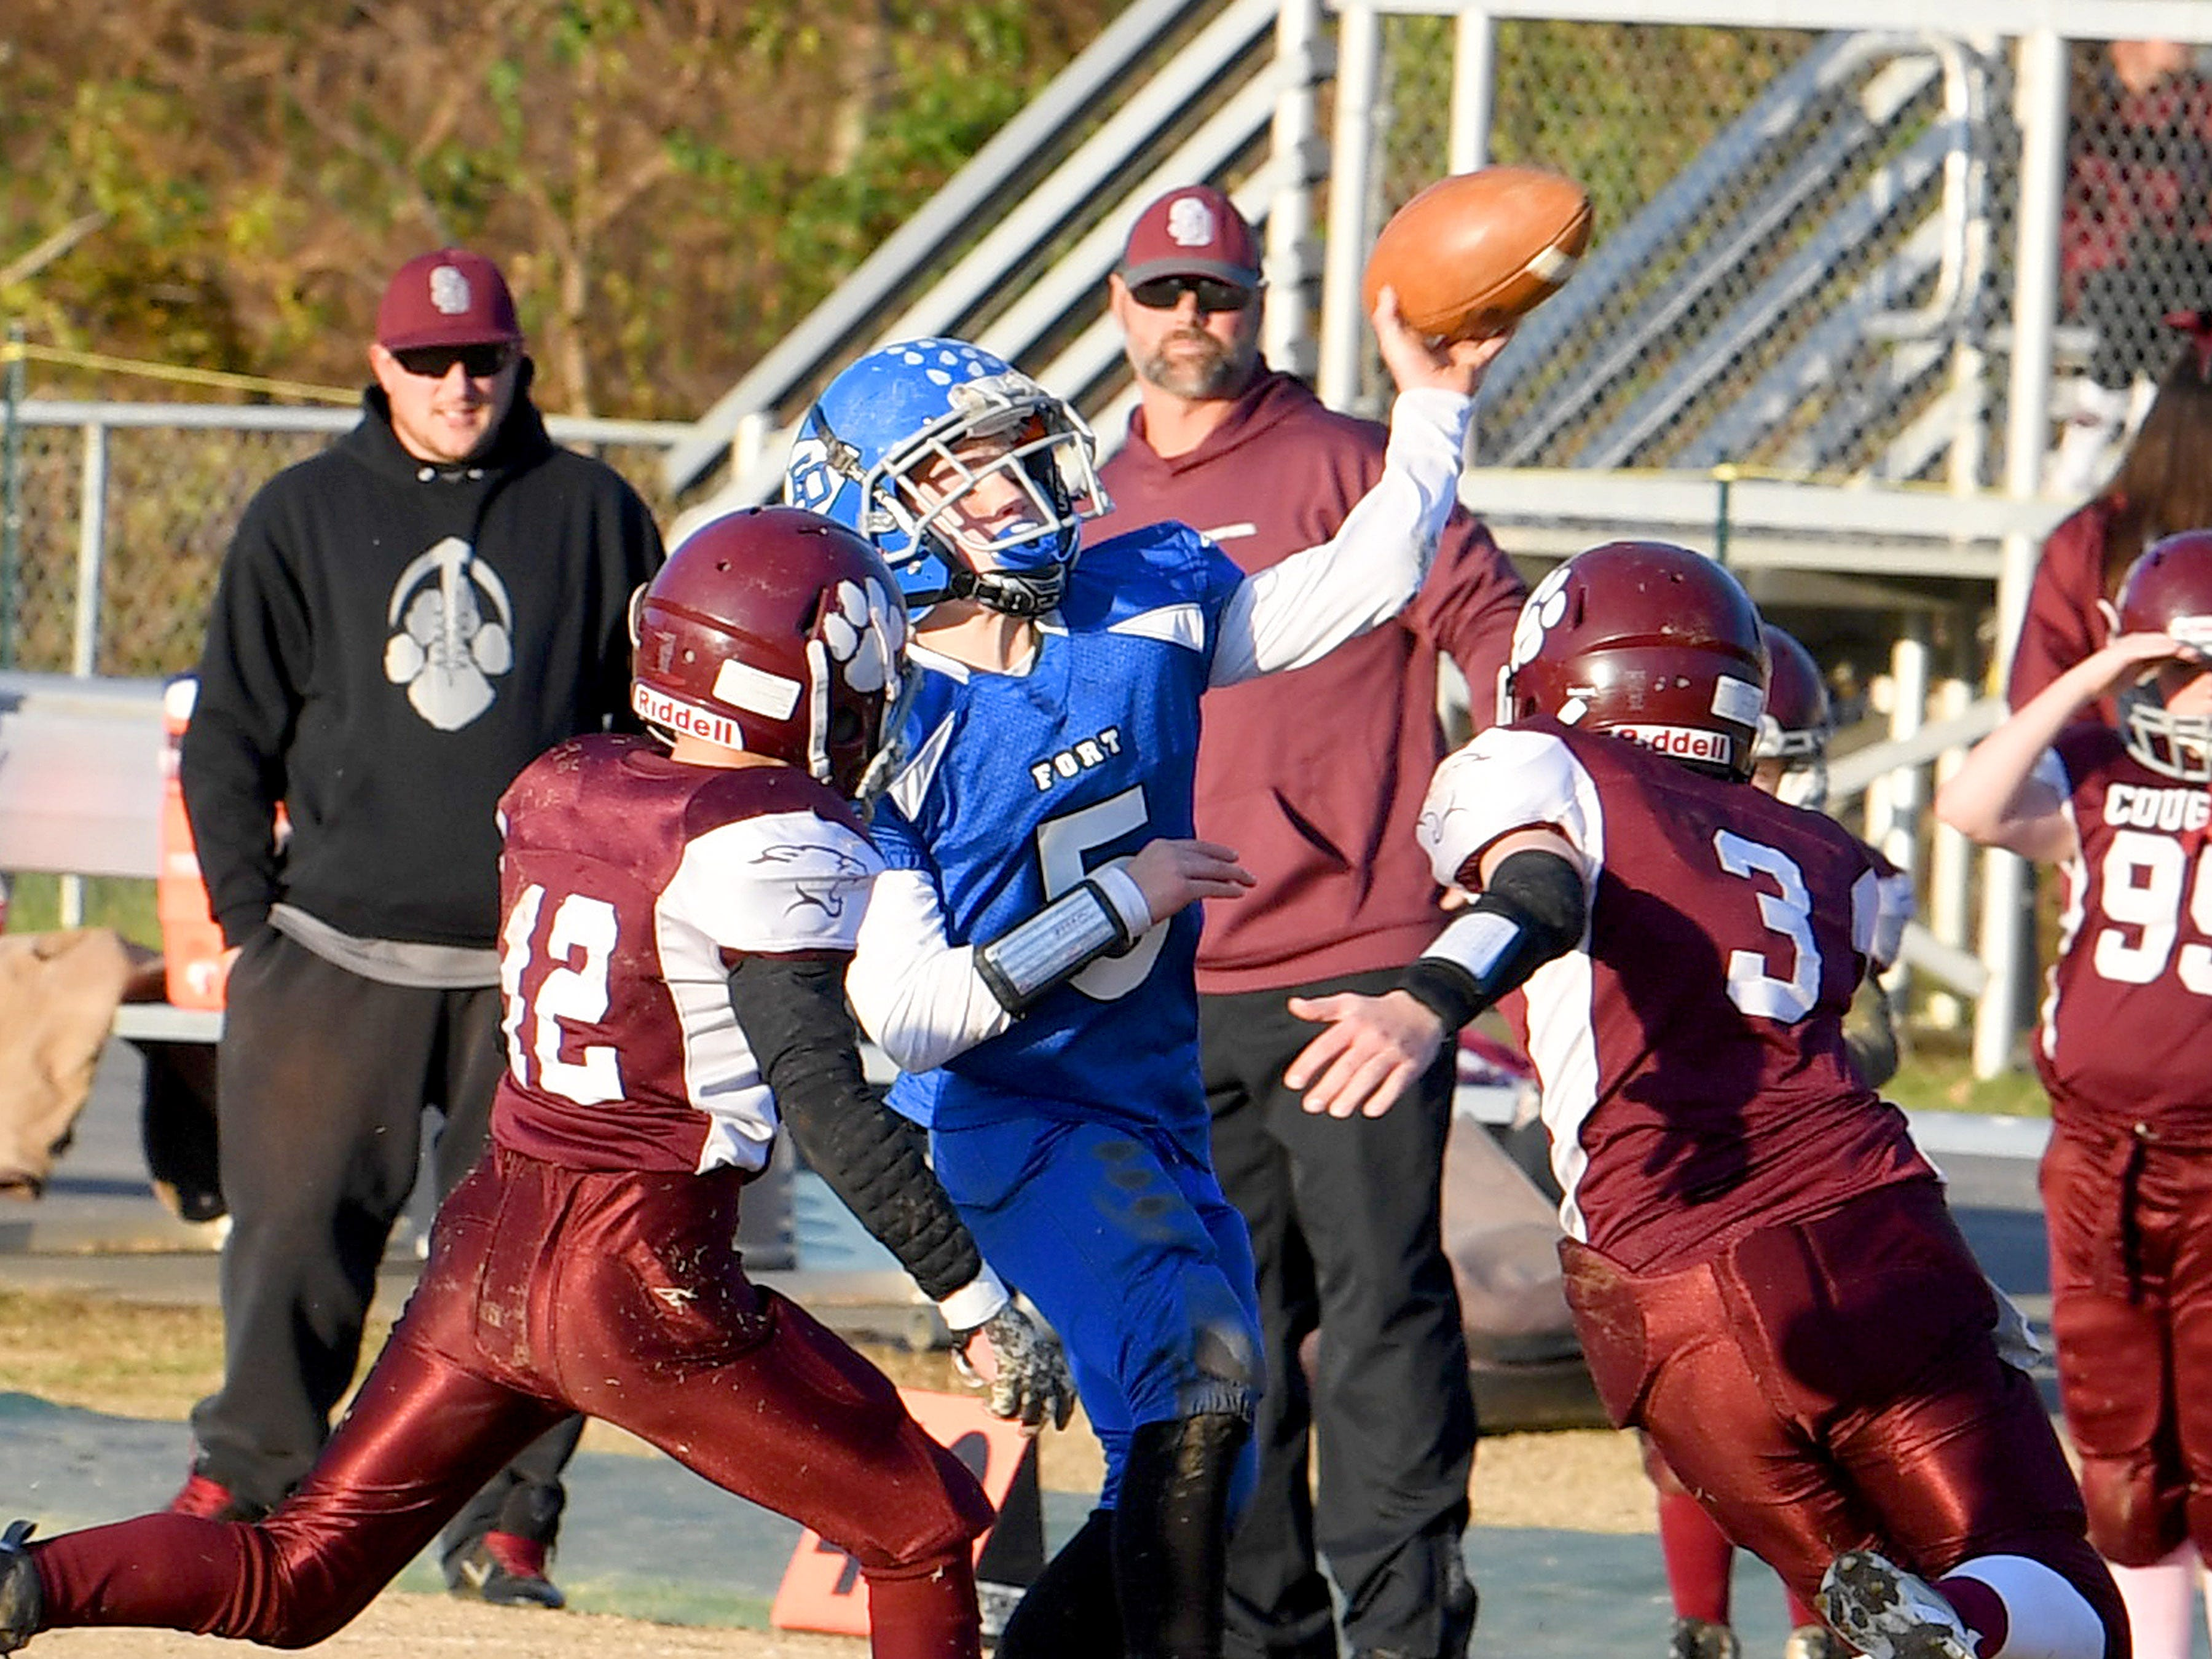 Fort Defiance quarterback Trey Miller fires off a pass during the Augusta County Quarterback Club Juniors Super Bowl in Fishersville on Sunday, Nov. 11, 2018.  Fort Defiance beats Stuarts Draft, 13-12.